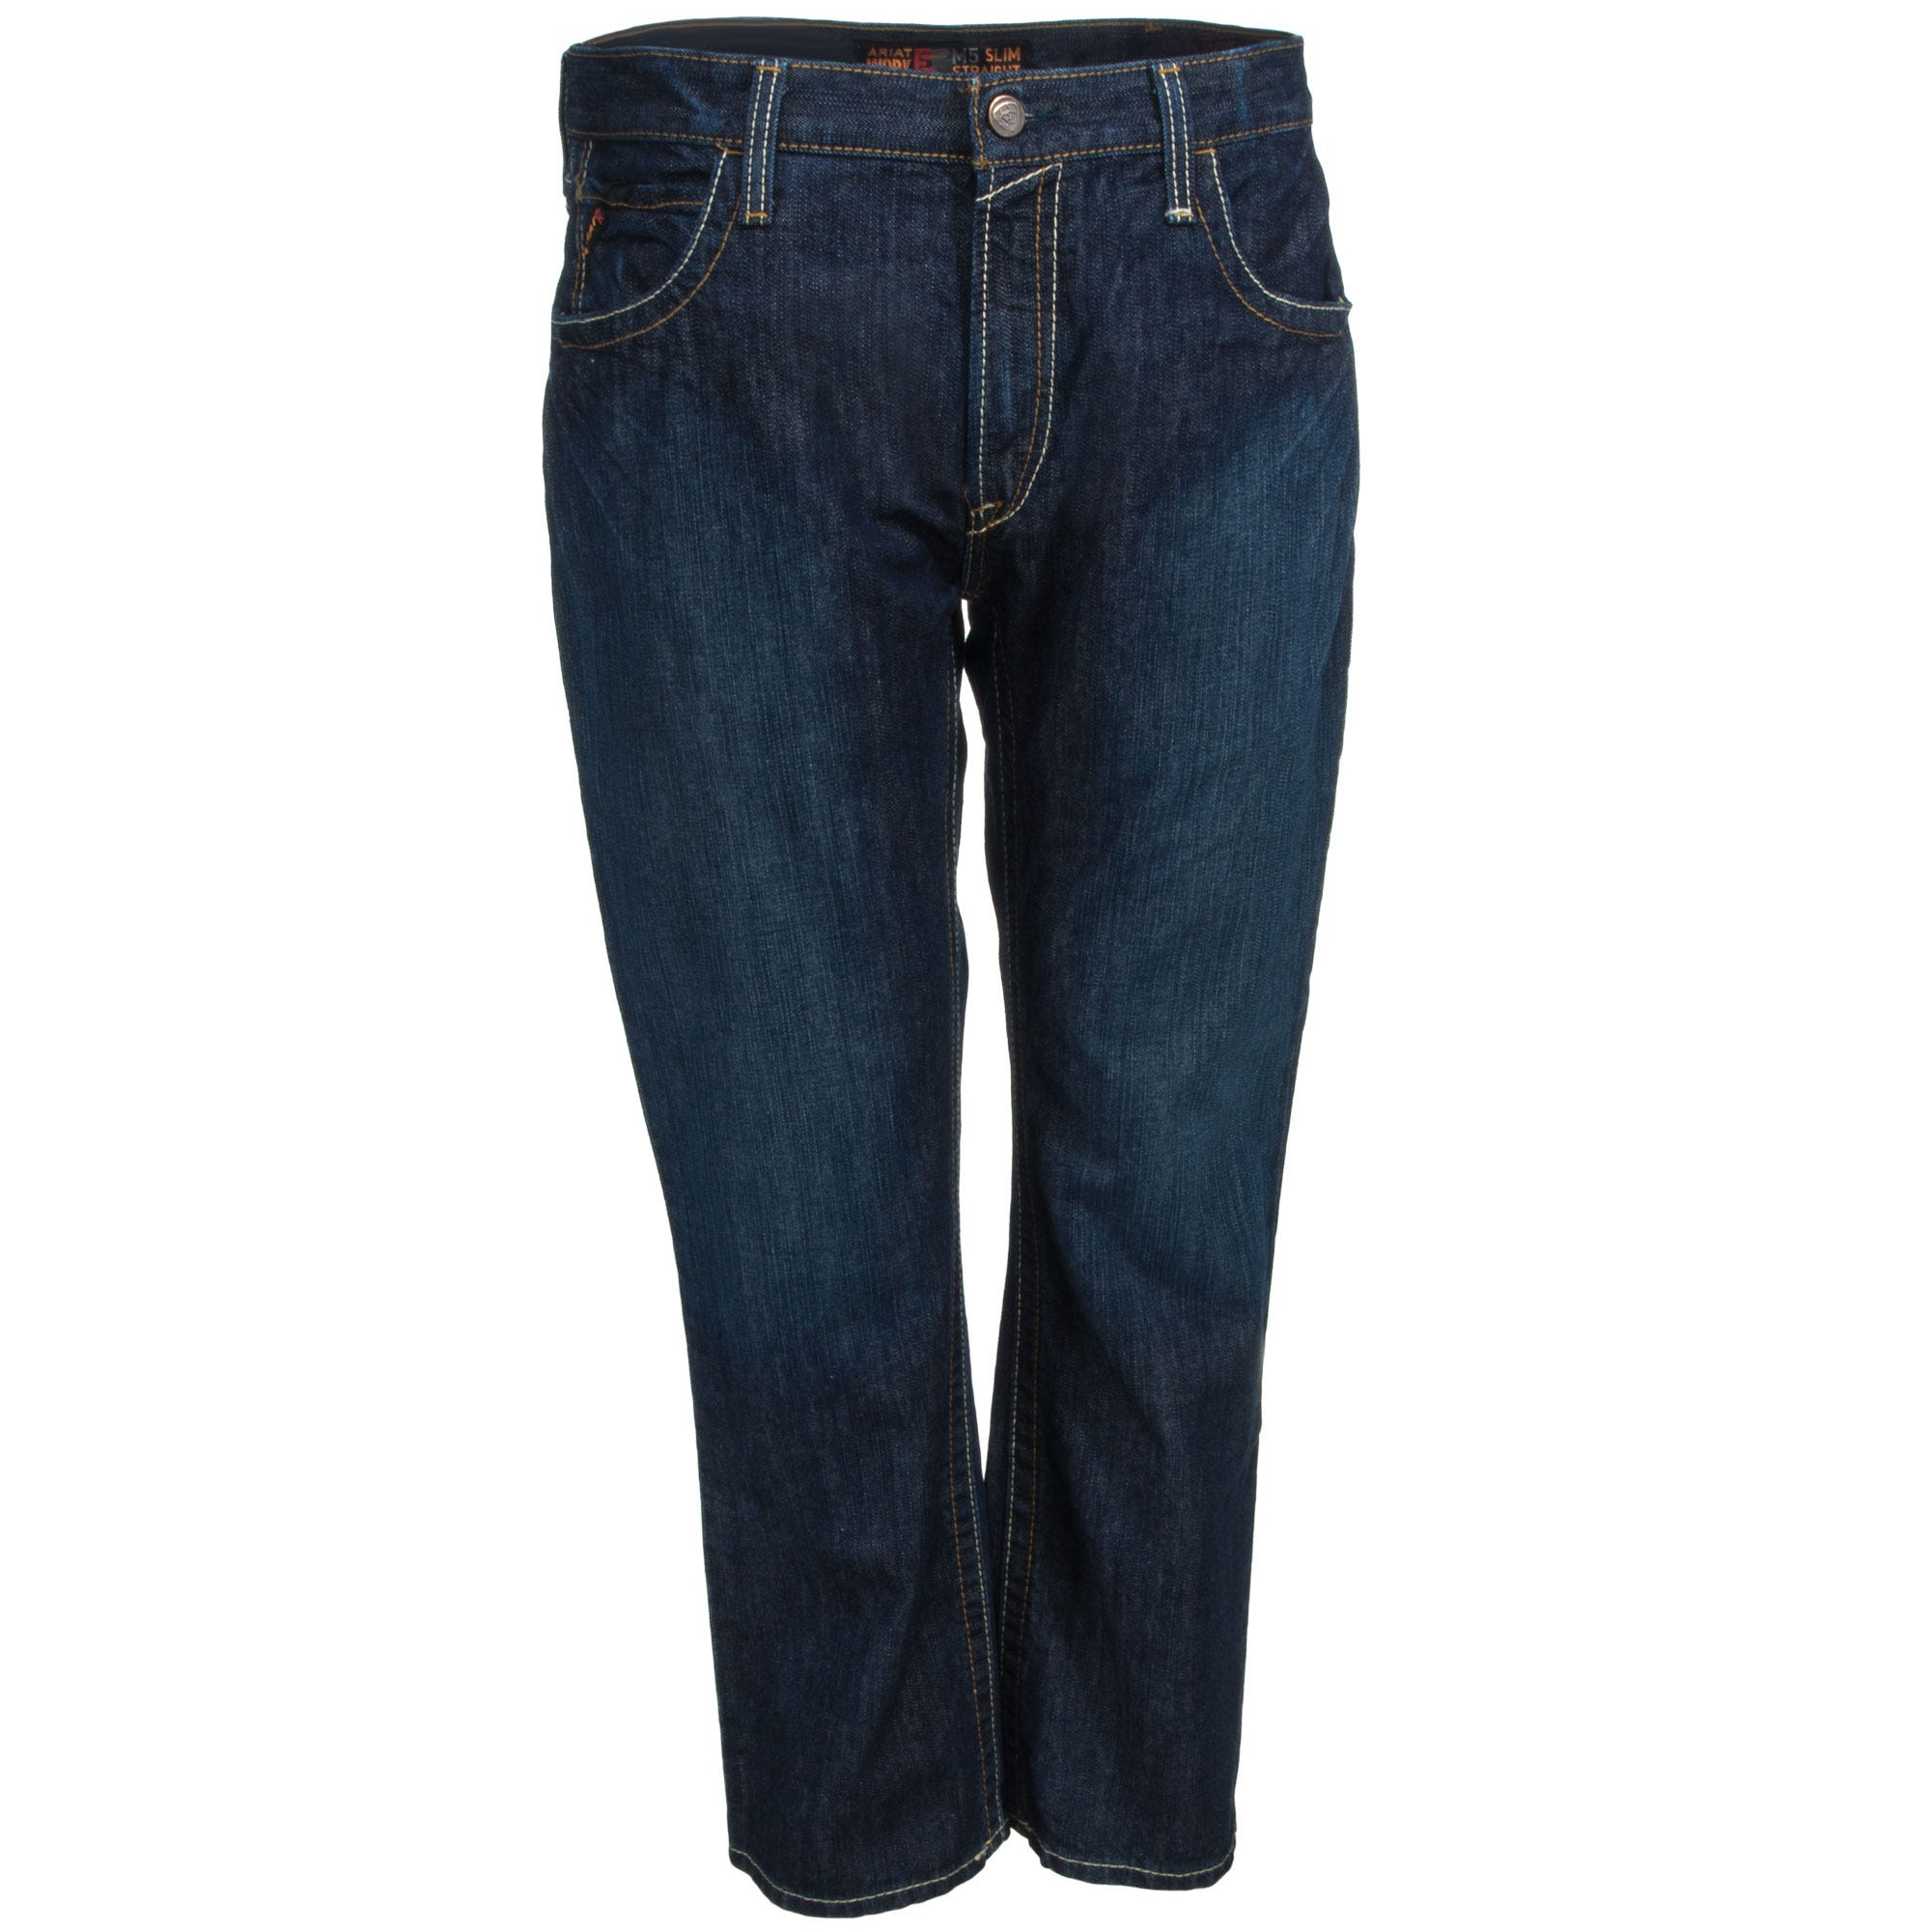 Ariat Jeans: Men's 10015166 Flame-Resistant M5 Slim Straight Leg Clay Work Jeans